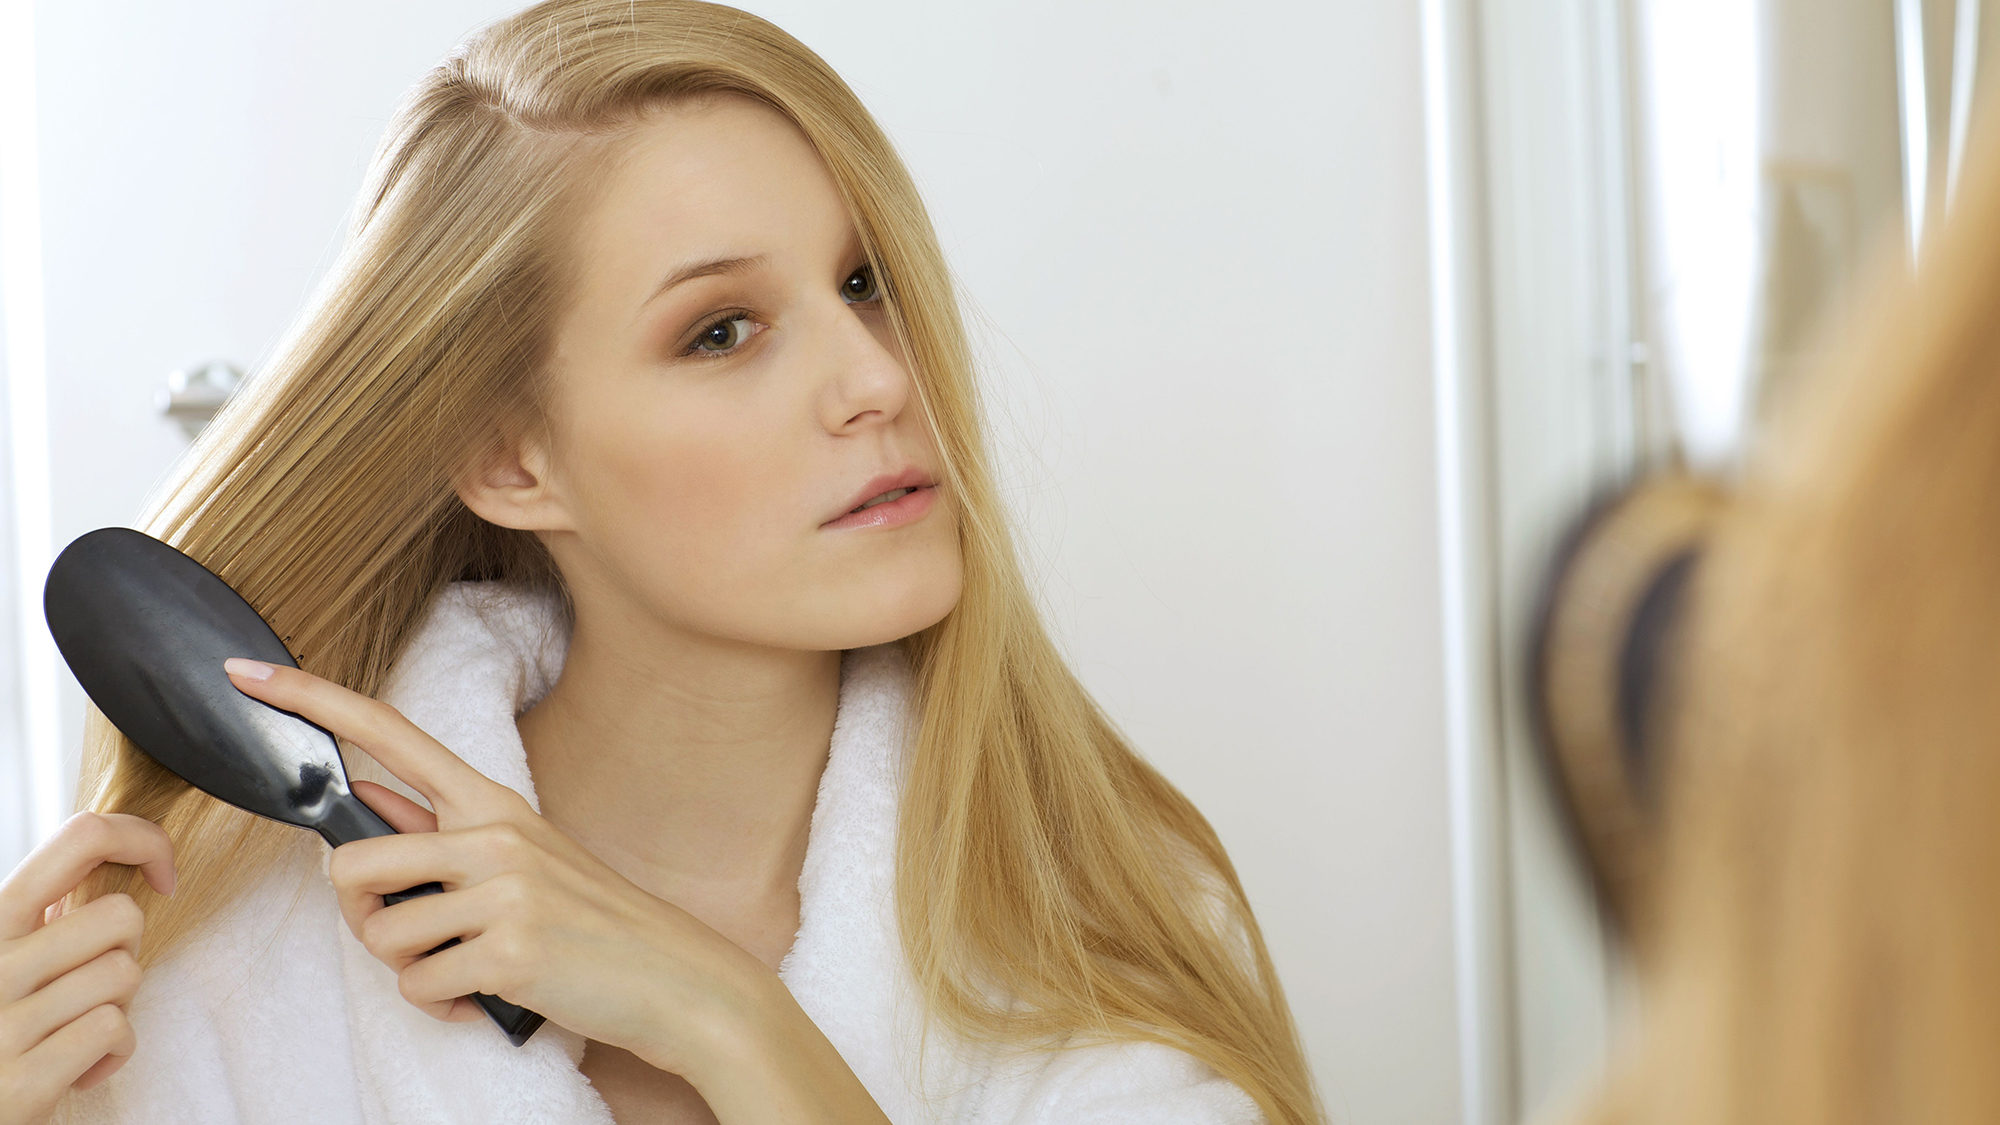 The way you're brushing your hair could be ruining it